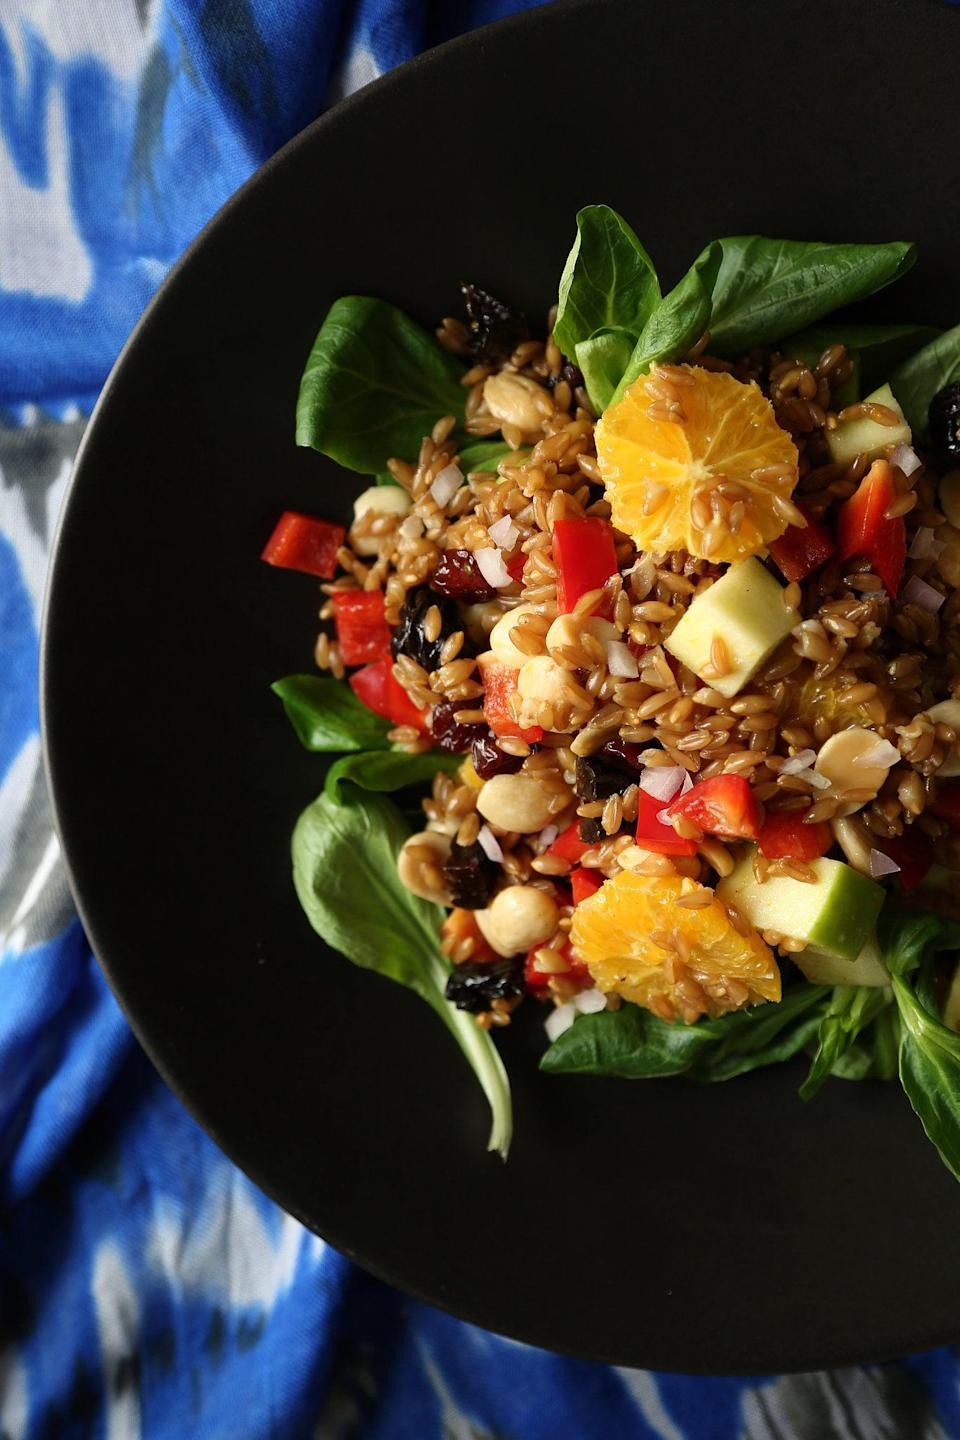 """<p>Looking for a salad that won't bore your taste buds? This vegan farro salad is just what you need. The citrus vinaigrette will take your taste buds to places they've never been before. This recipe was made to serve eight, so chop the ingredients in half, and you'll have enough for leftovers.</p> <p><strong>Get the recipe:</strong> <a href=""""https://www.popsugar.com/food/Vegan-Farro-Salad-Recipe-34732086"""" class=""""link rapid-noclick-resp"""" rel=""""nofollow noopener"""" target=""""_blank"""" data-ylk=""""slk:vegan farro salad with citrus vinaigrette"""">vegan farro salad with citrus vinaigrette</a> </p>"""